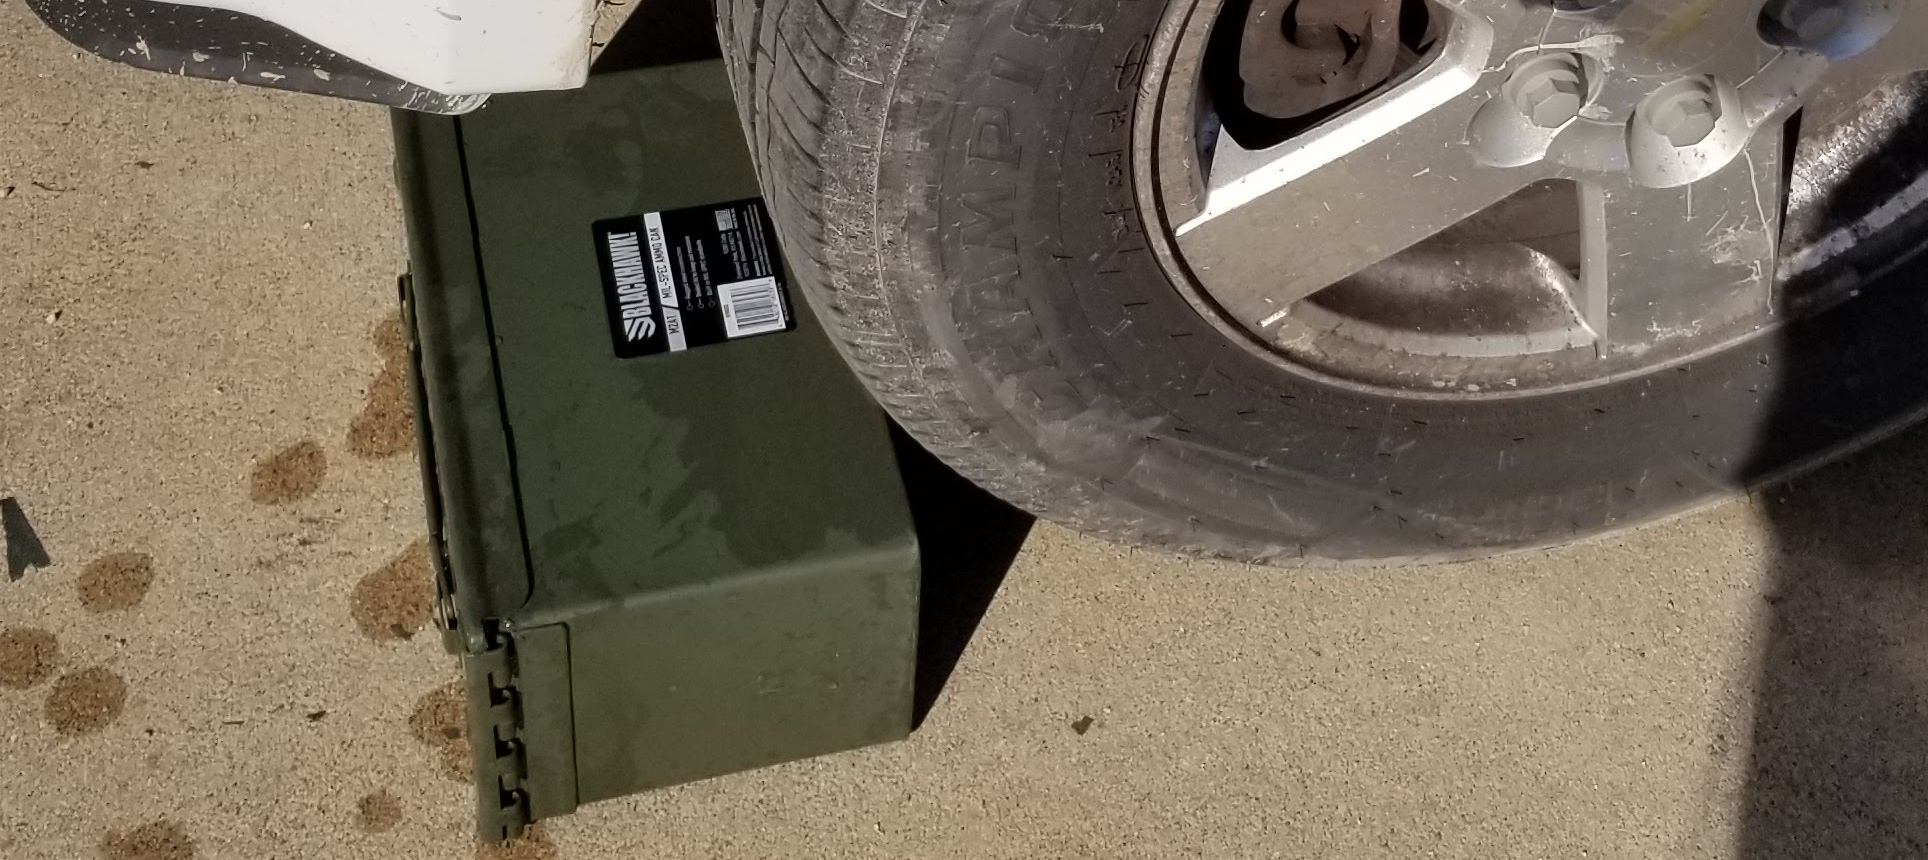 Running over ammo cans with a vehicle